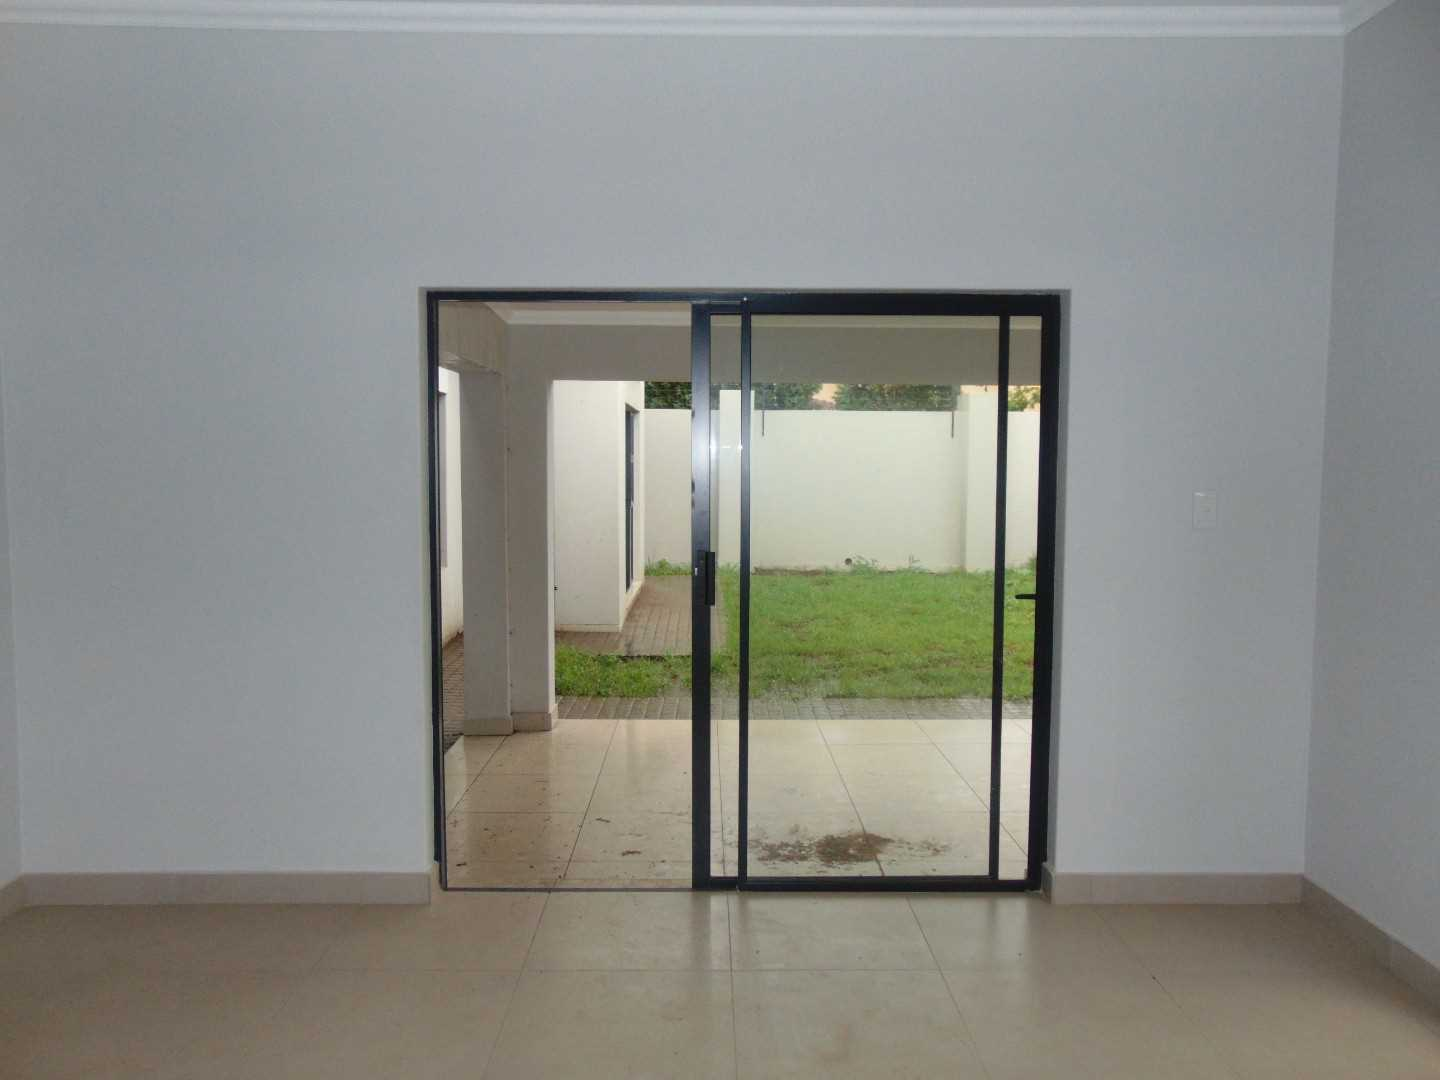 the sliding door to the patio and garden.